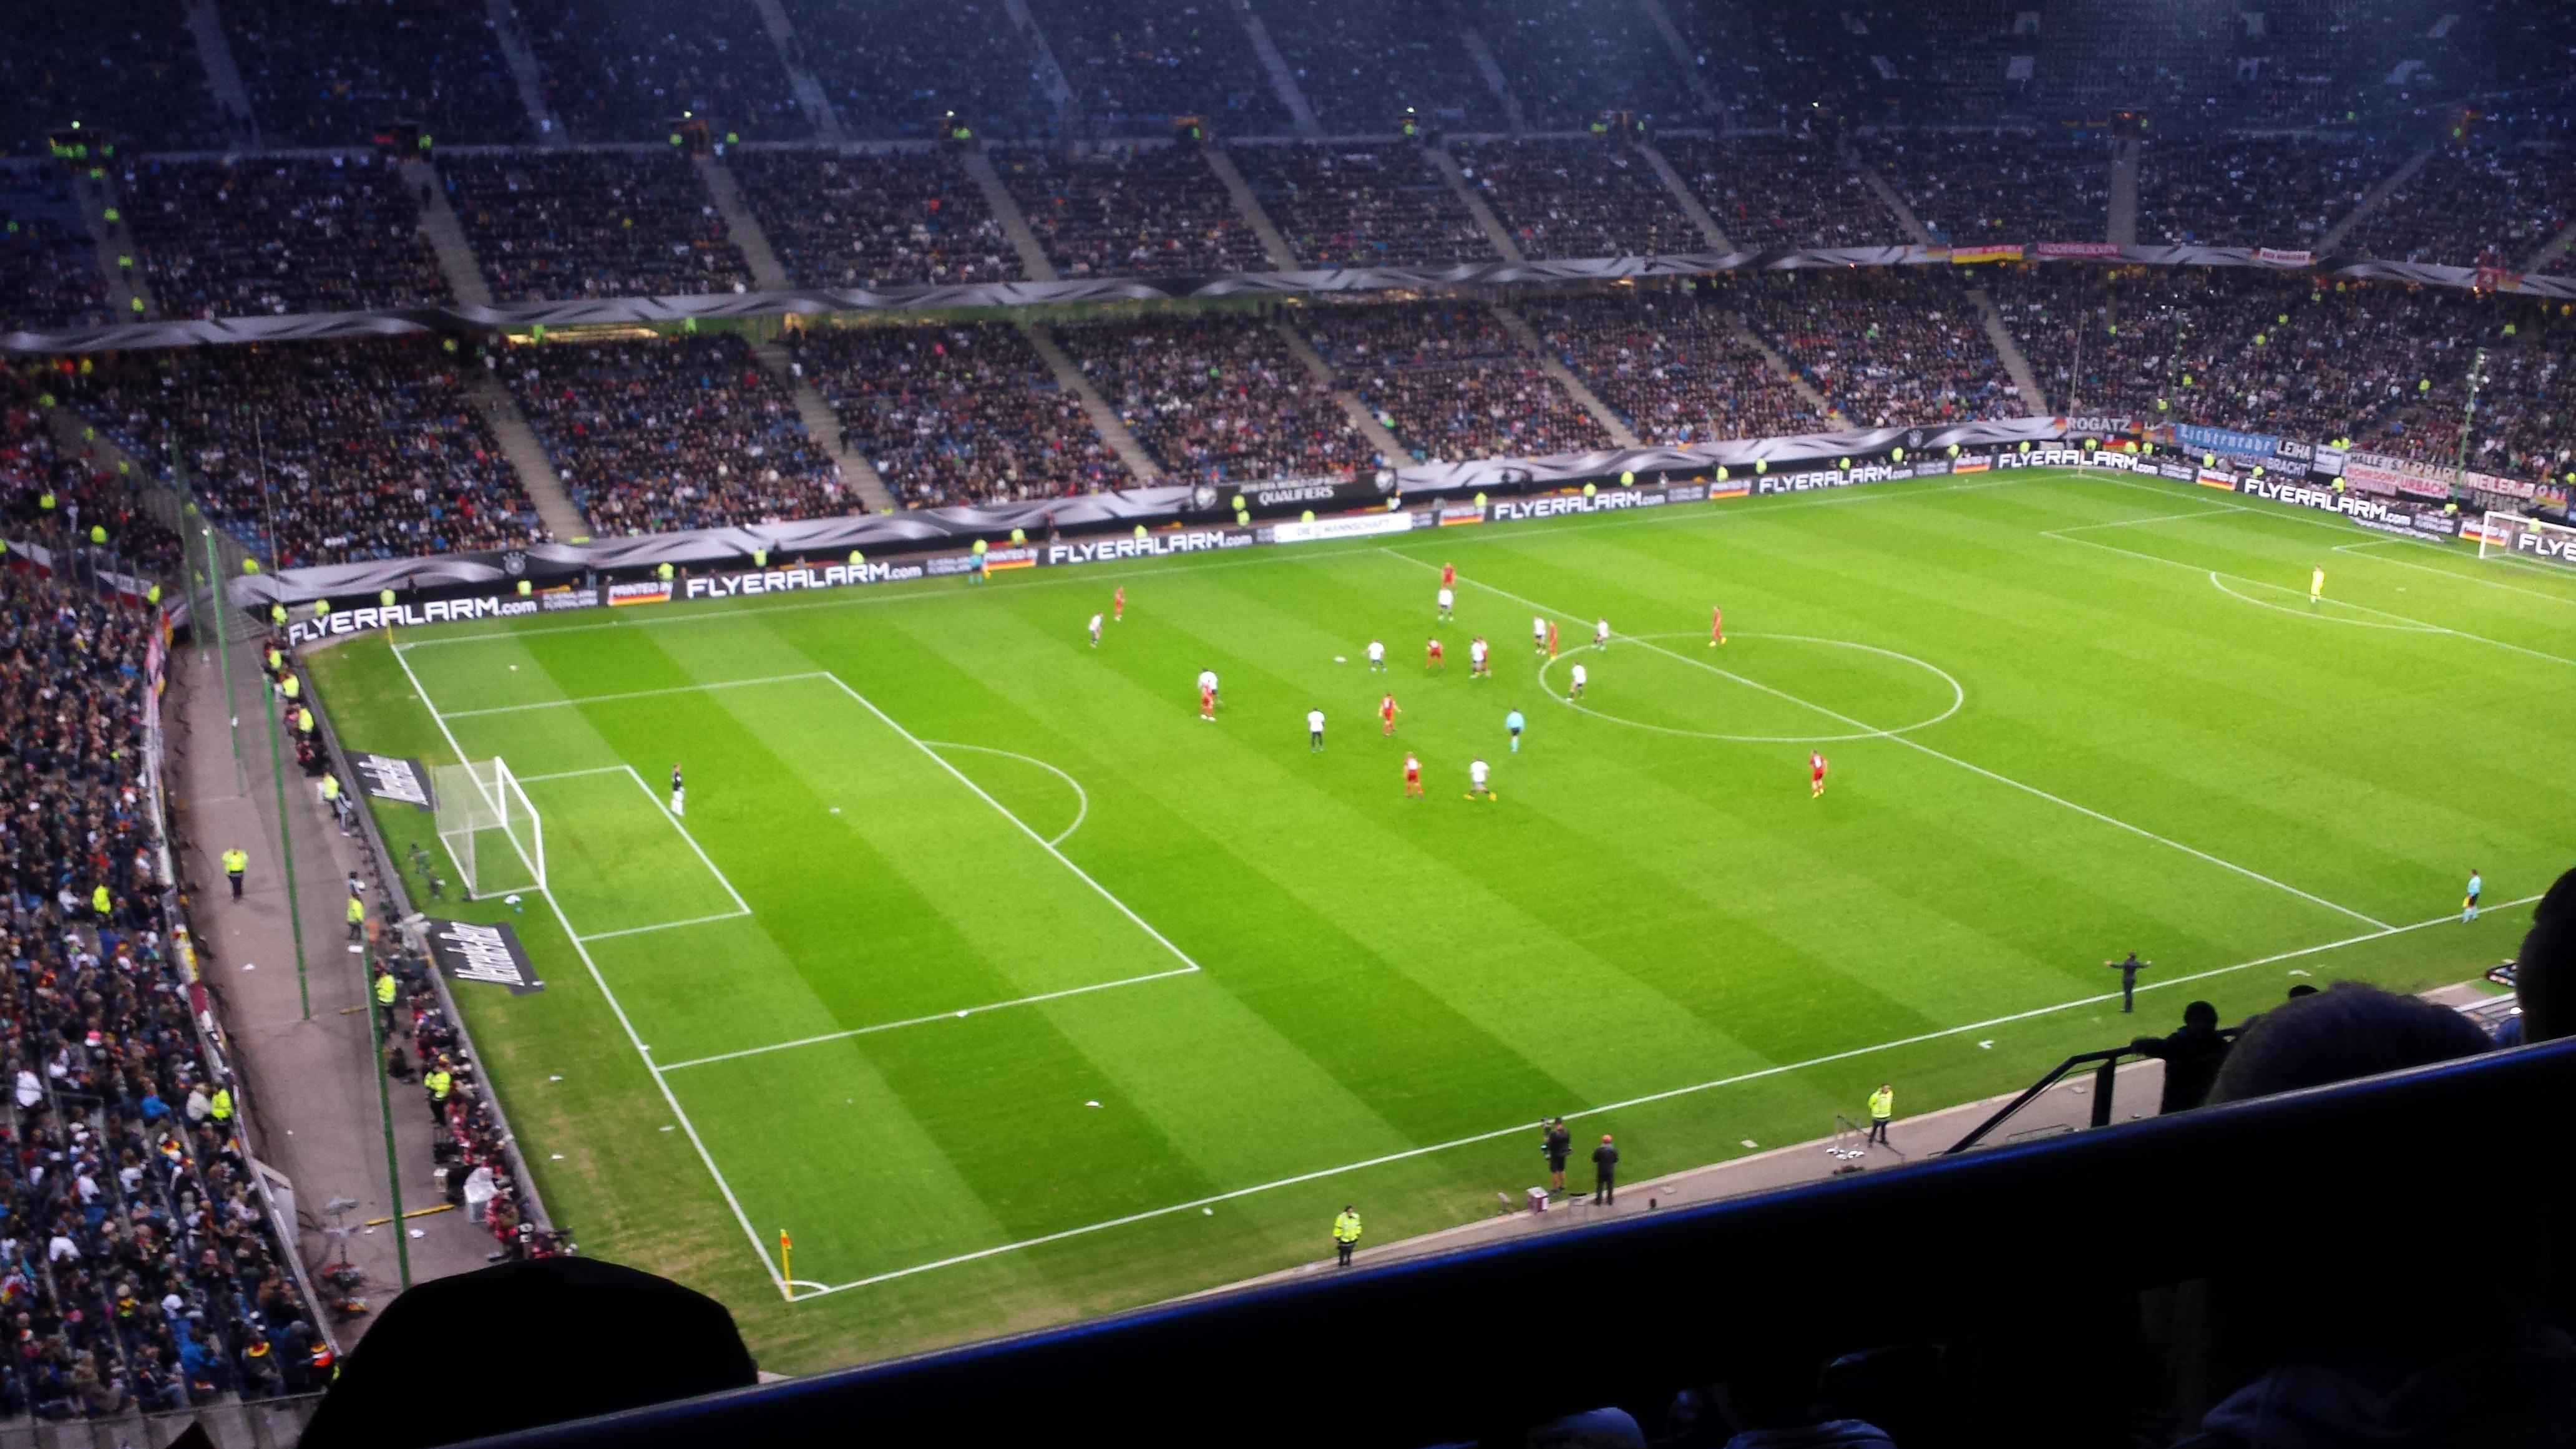 Volksparkstadion Section 7C Row 9 Seat 20